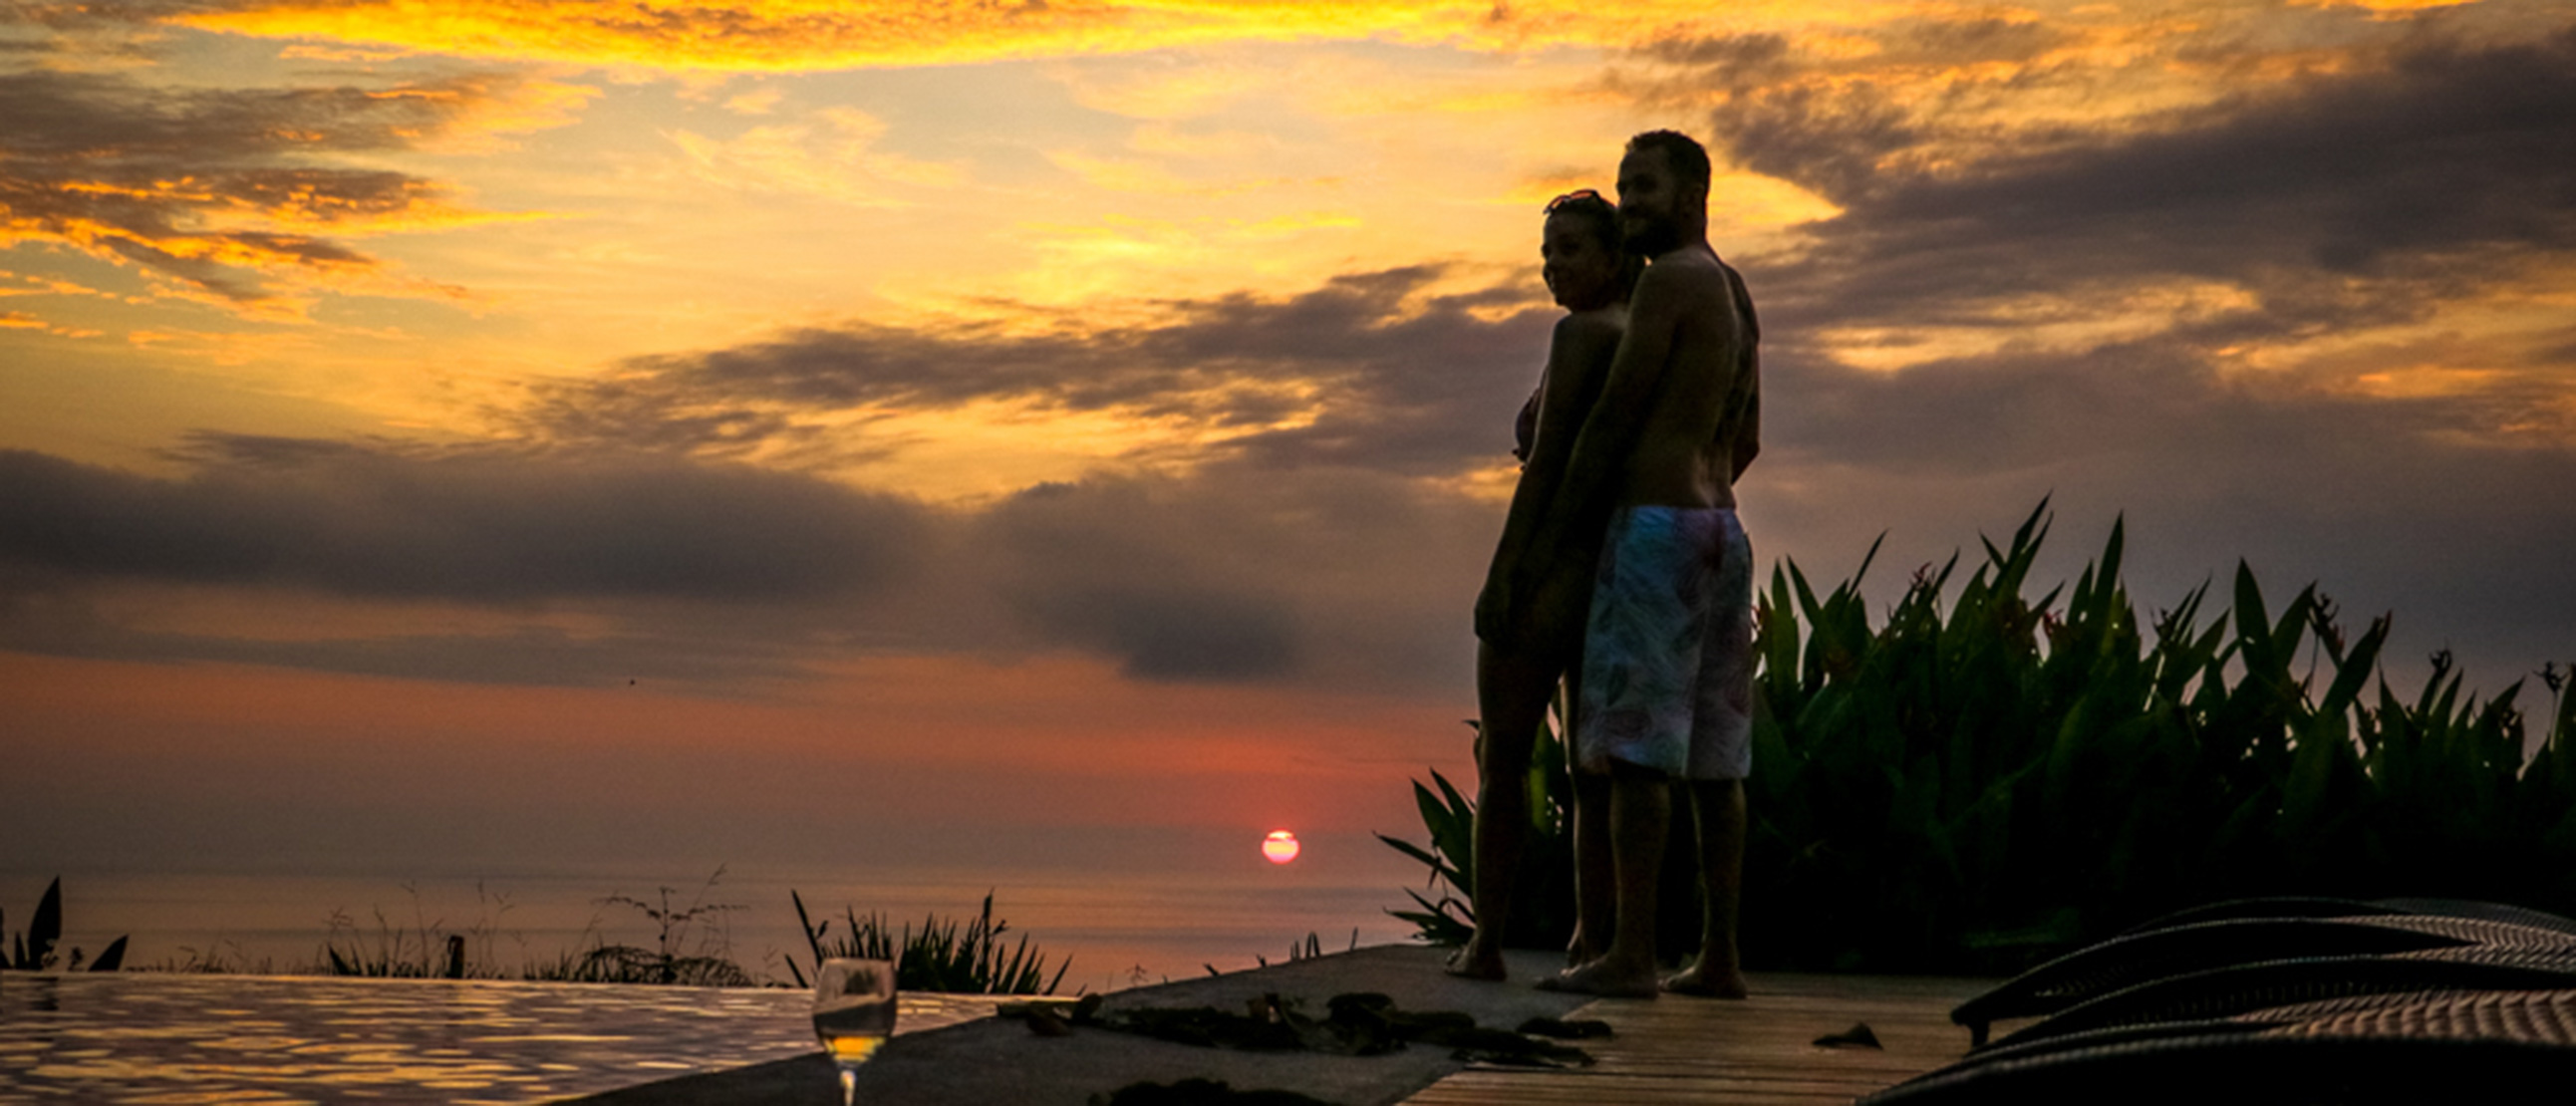 Watching_The_Sunset_Kalon_Surf